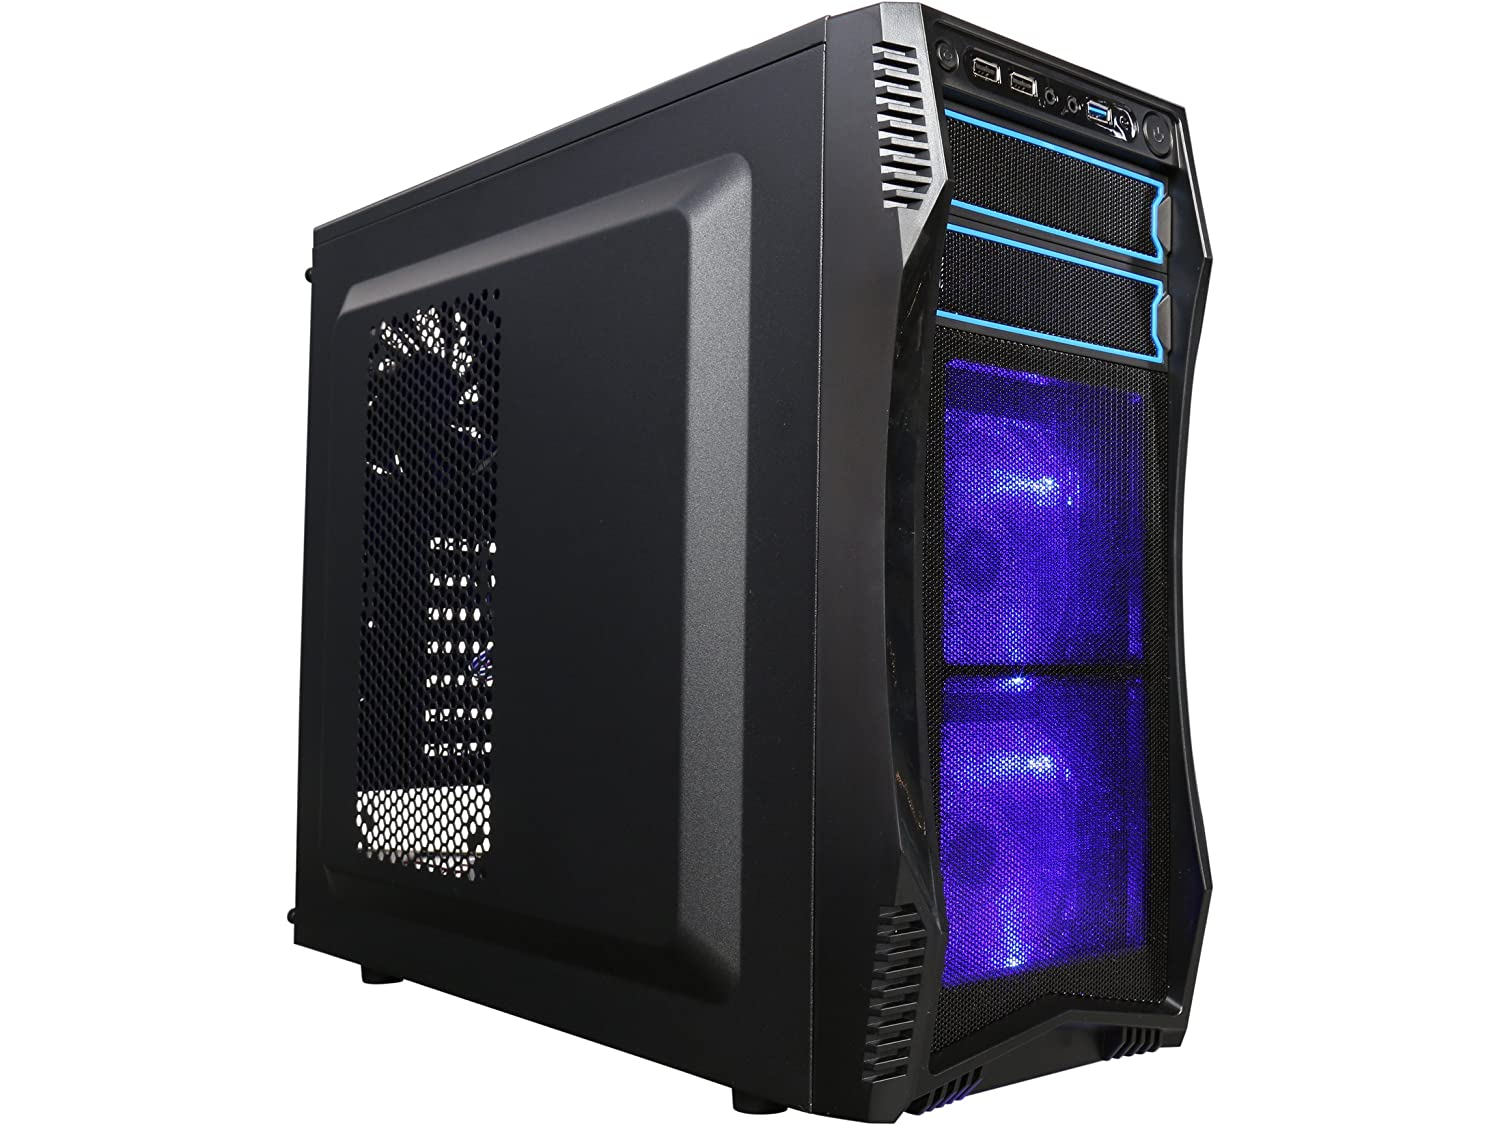 Best Atx Case 2020 Top 10 Best Mini Gaming PC Towers on the Market 2019 2020 on